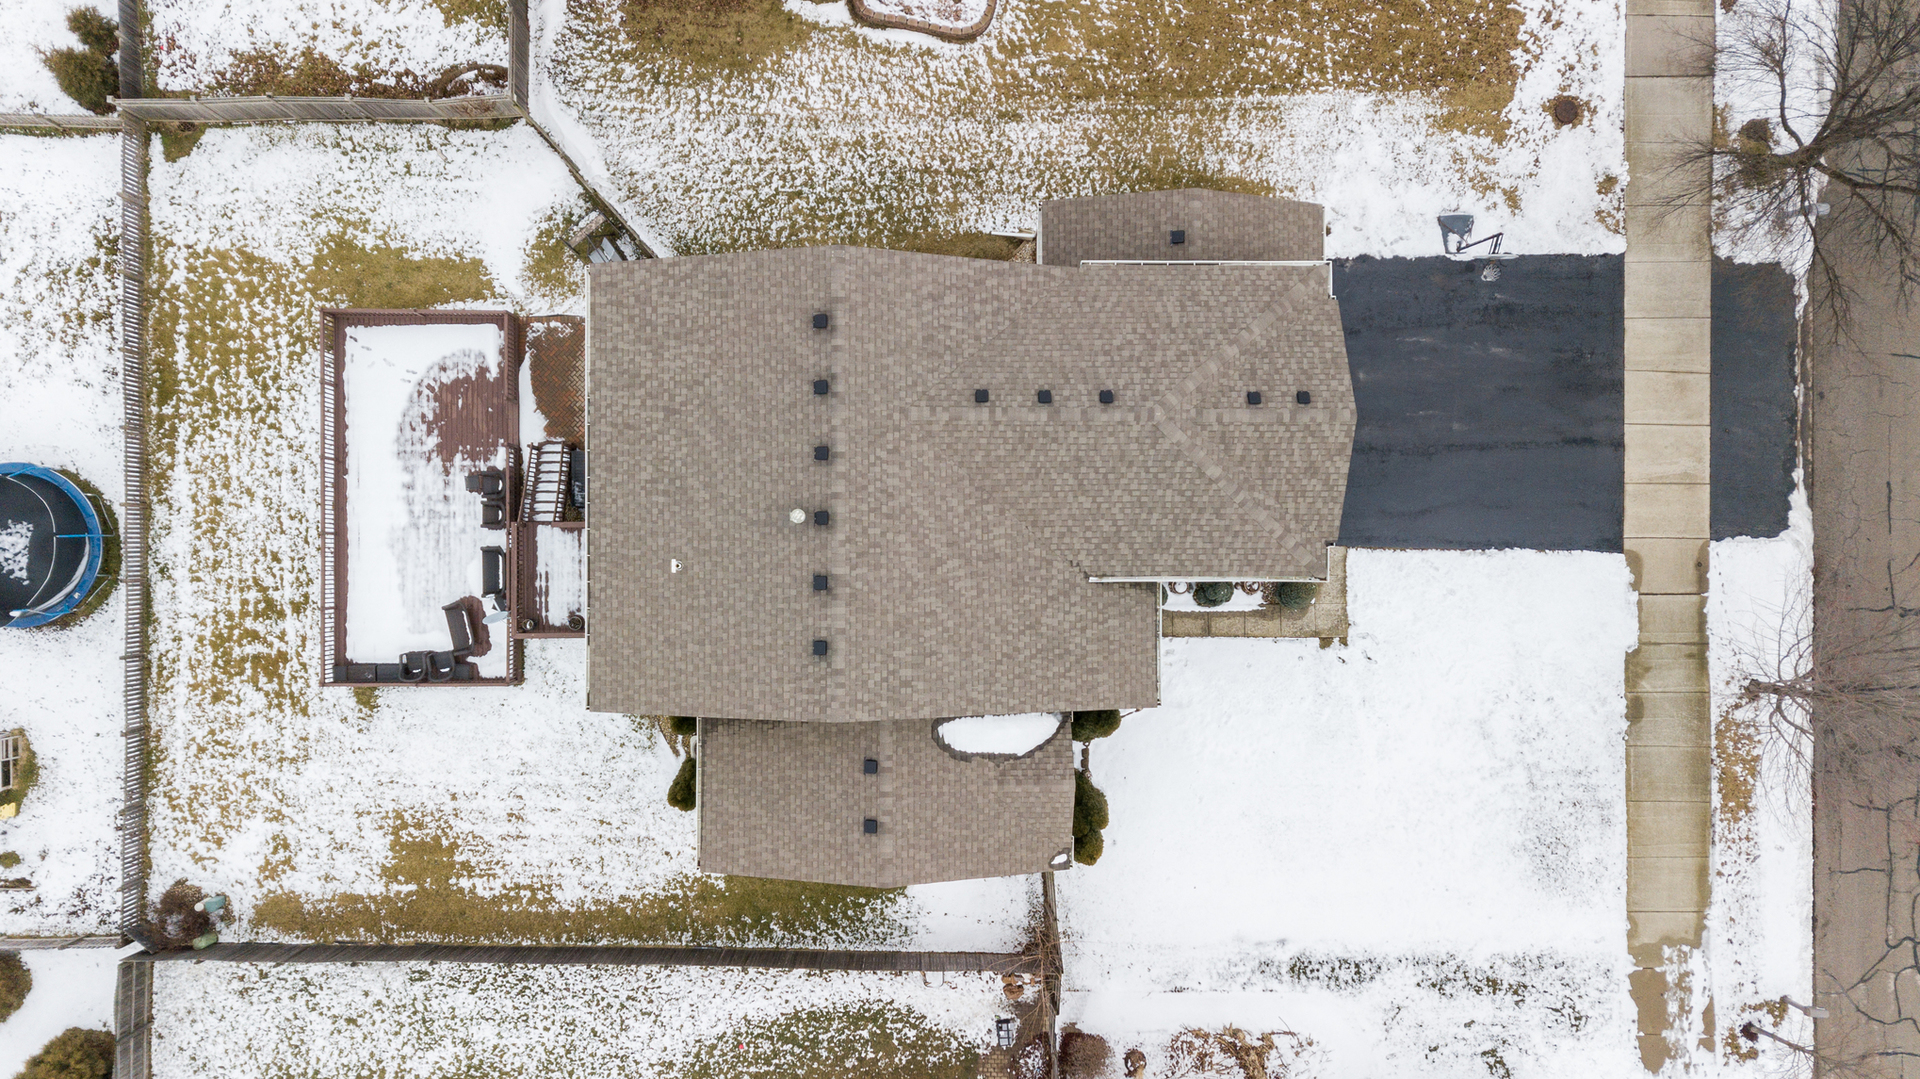 26941 West Sycamore, Channahon, Illinois, 60410